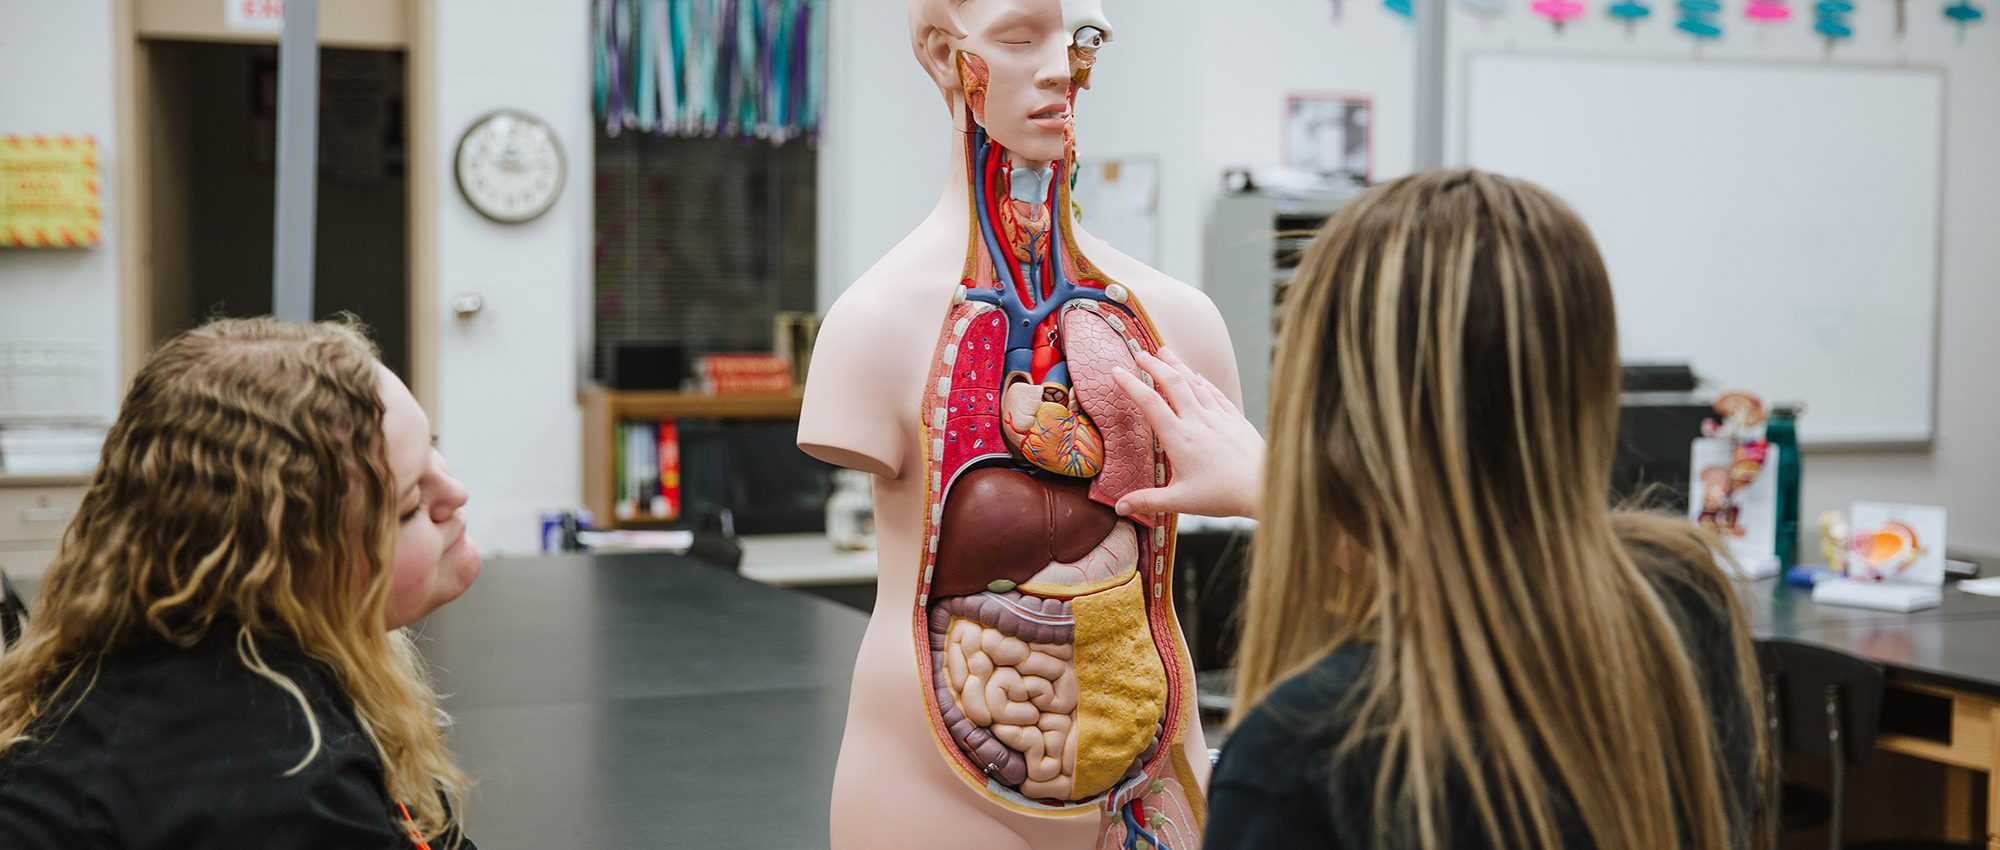 student studying the anatomy